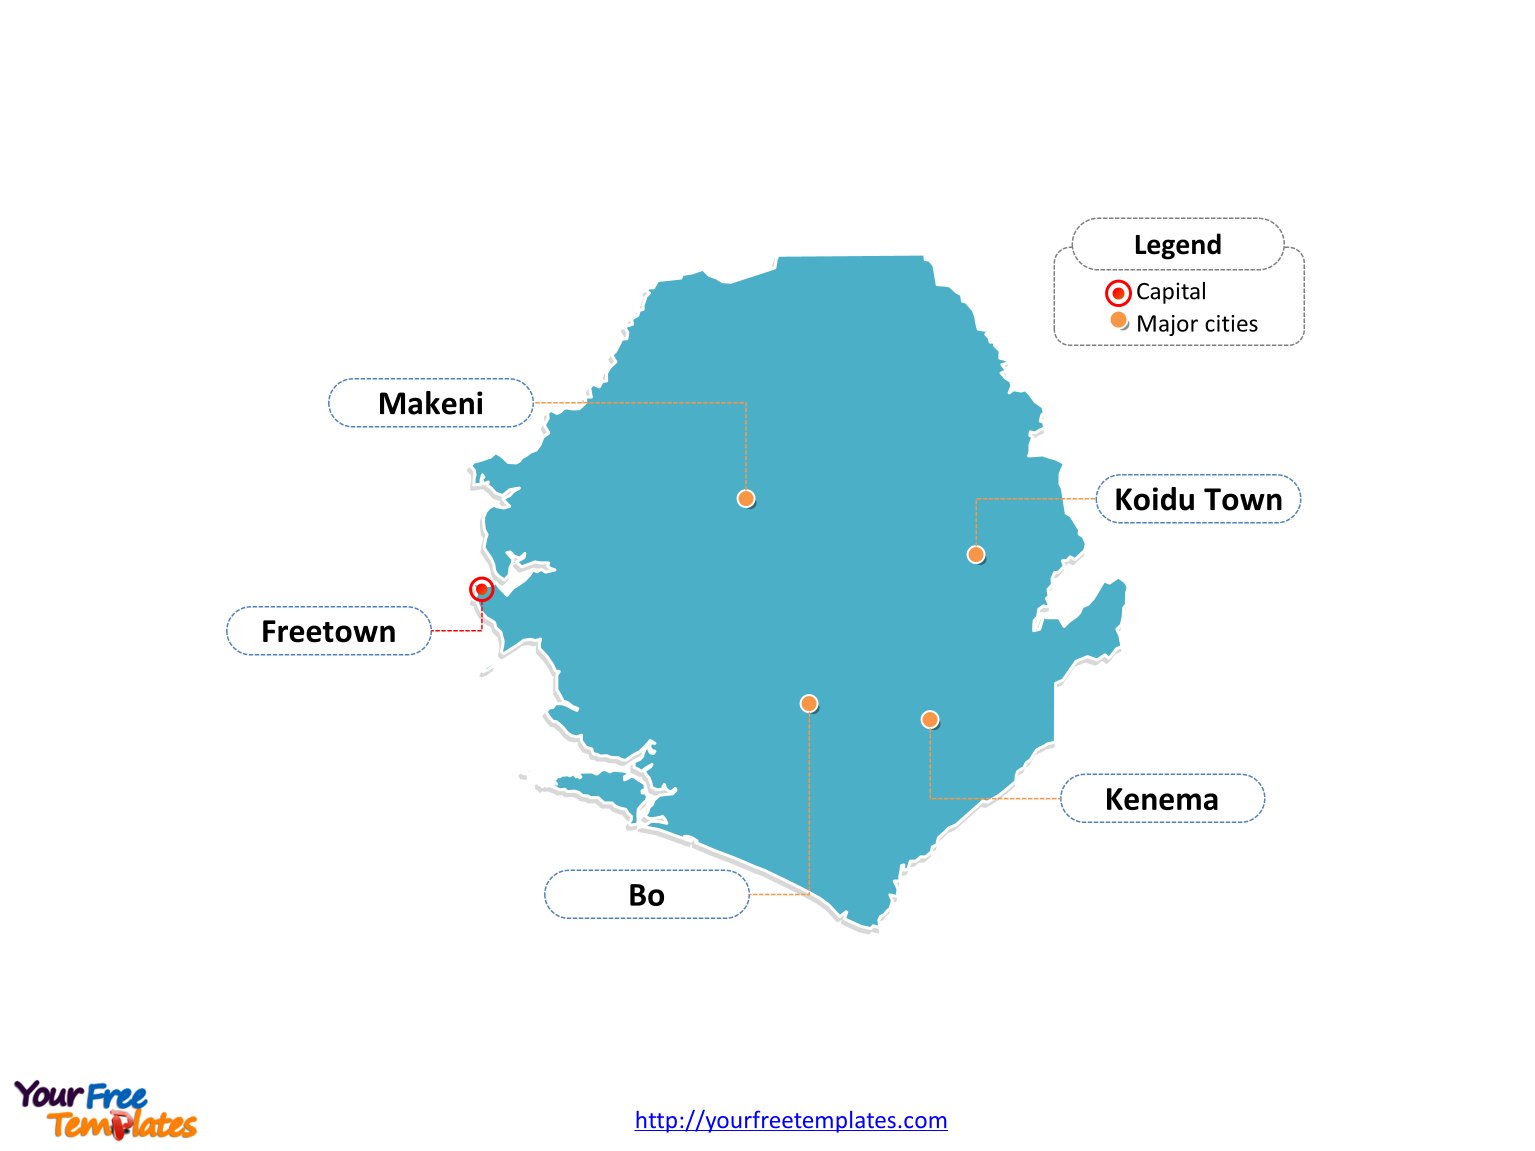 Sierra Leone Editable map labeled with cities